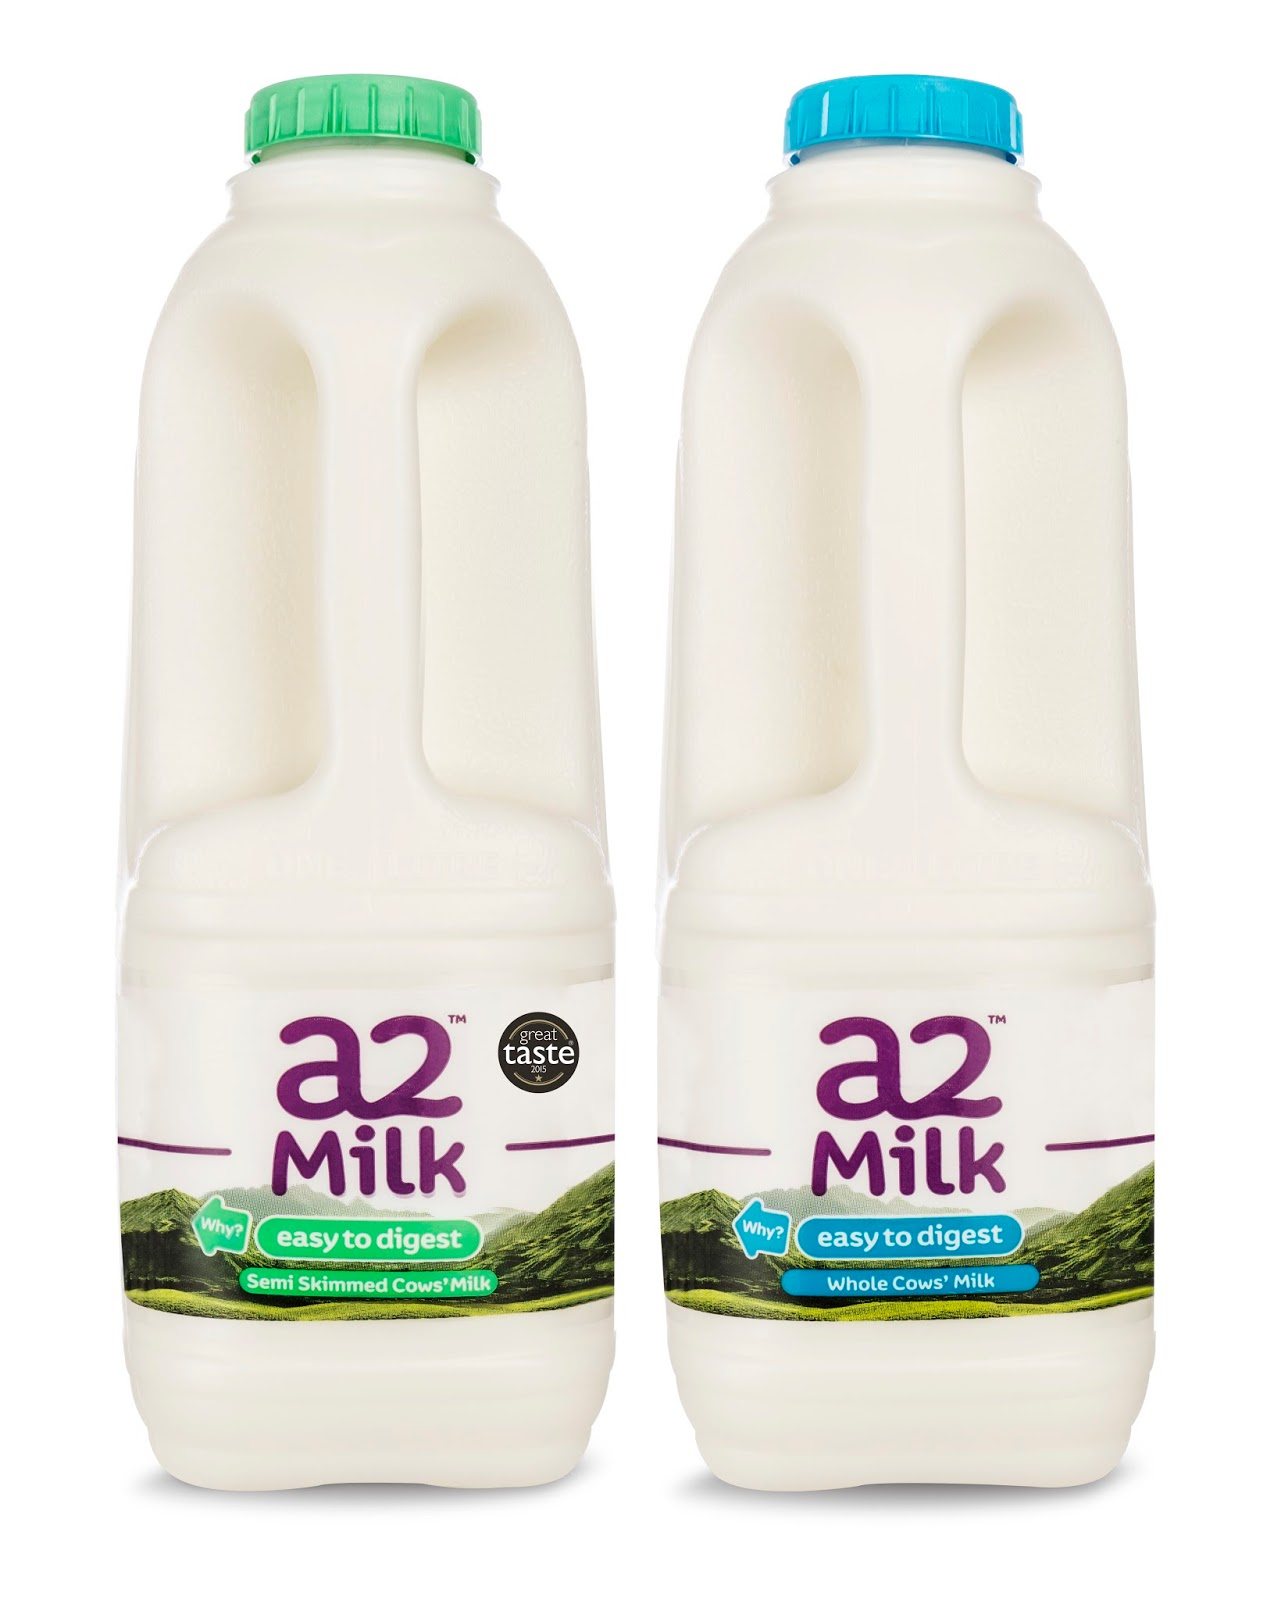 Hijacked By Twins: New Research Results for a2Milk and ...